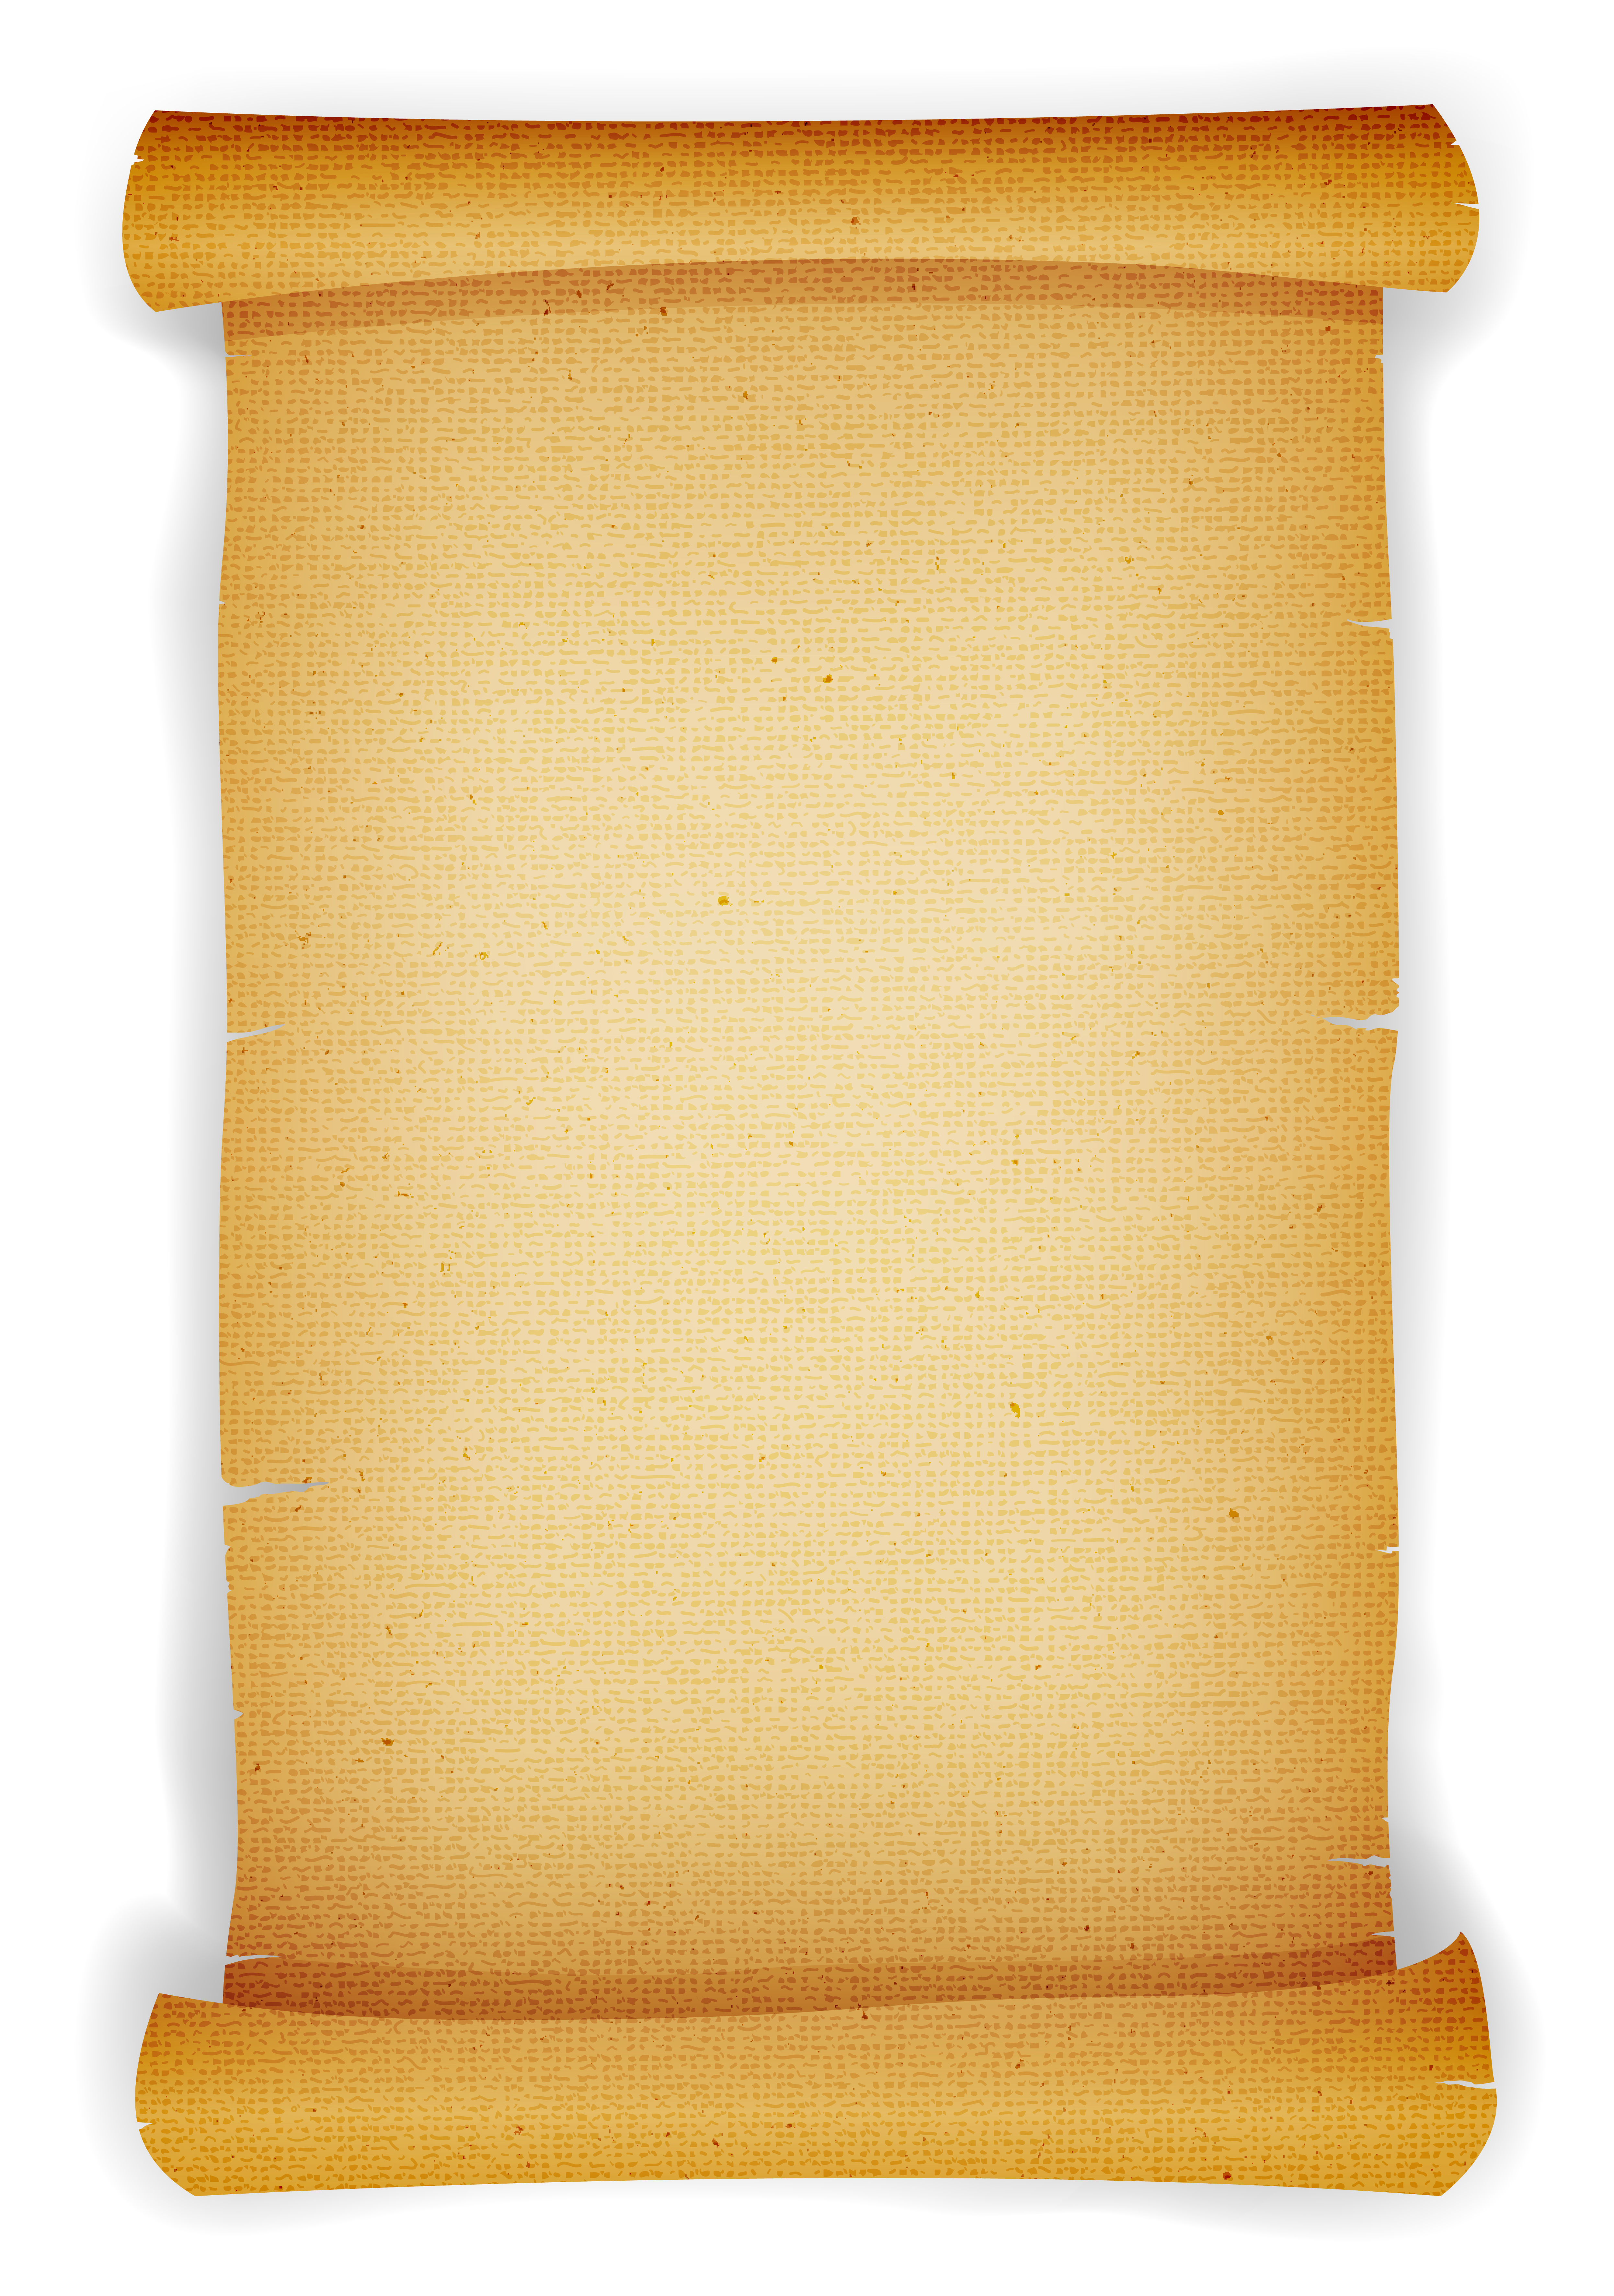 Old Textured Parchment Scroll Download Free Vector Art